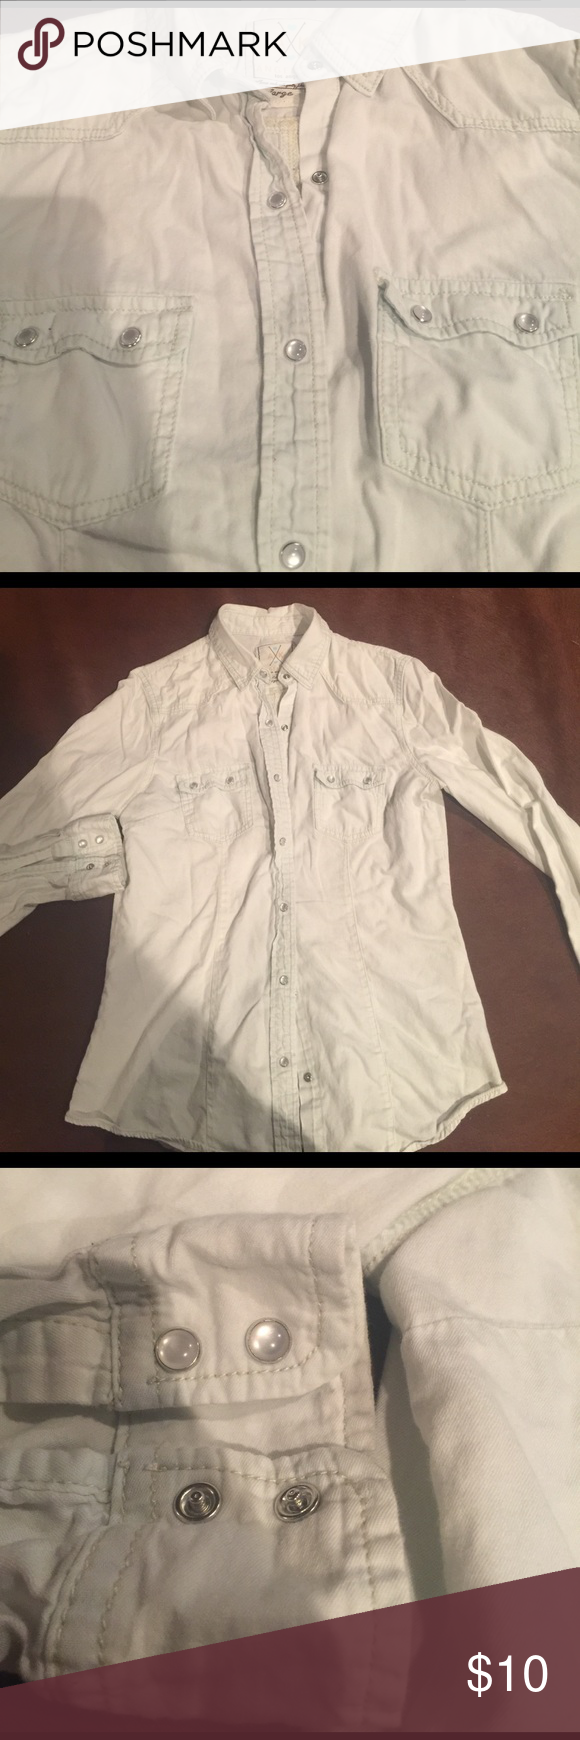 💯 % Cotton Angel Kiss Denim shirt This shirt is so light blue it is almost white.  It is a large but fits a medium. Has a fitted waist and darts in back for a fitted look. It is so soft it's like wearing a t-shirt.  Has awesome pearl like snaps. angel kiss Tops Button Down Shirts